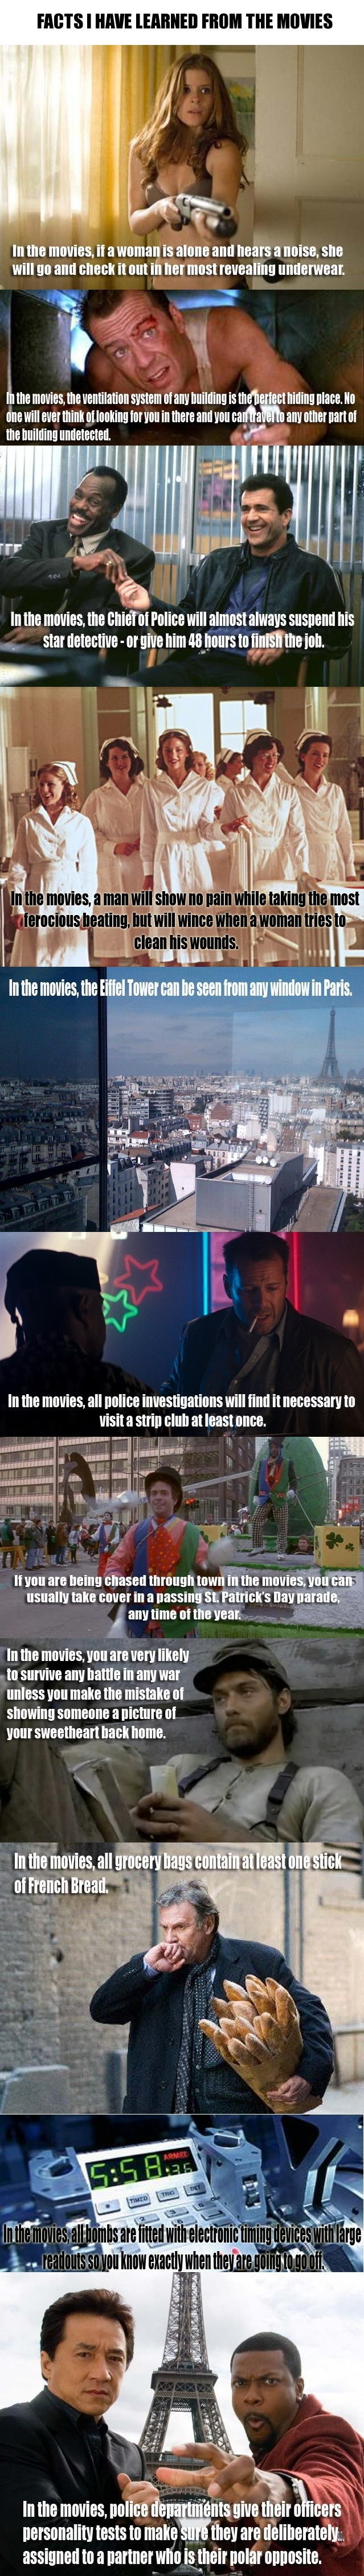 Facts I learned from the movies - Really funny pictures ... - photo#47